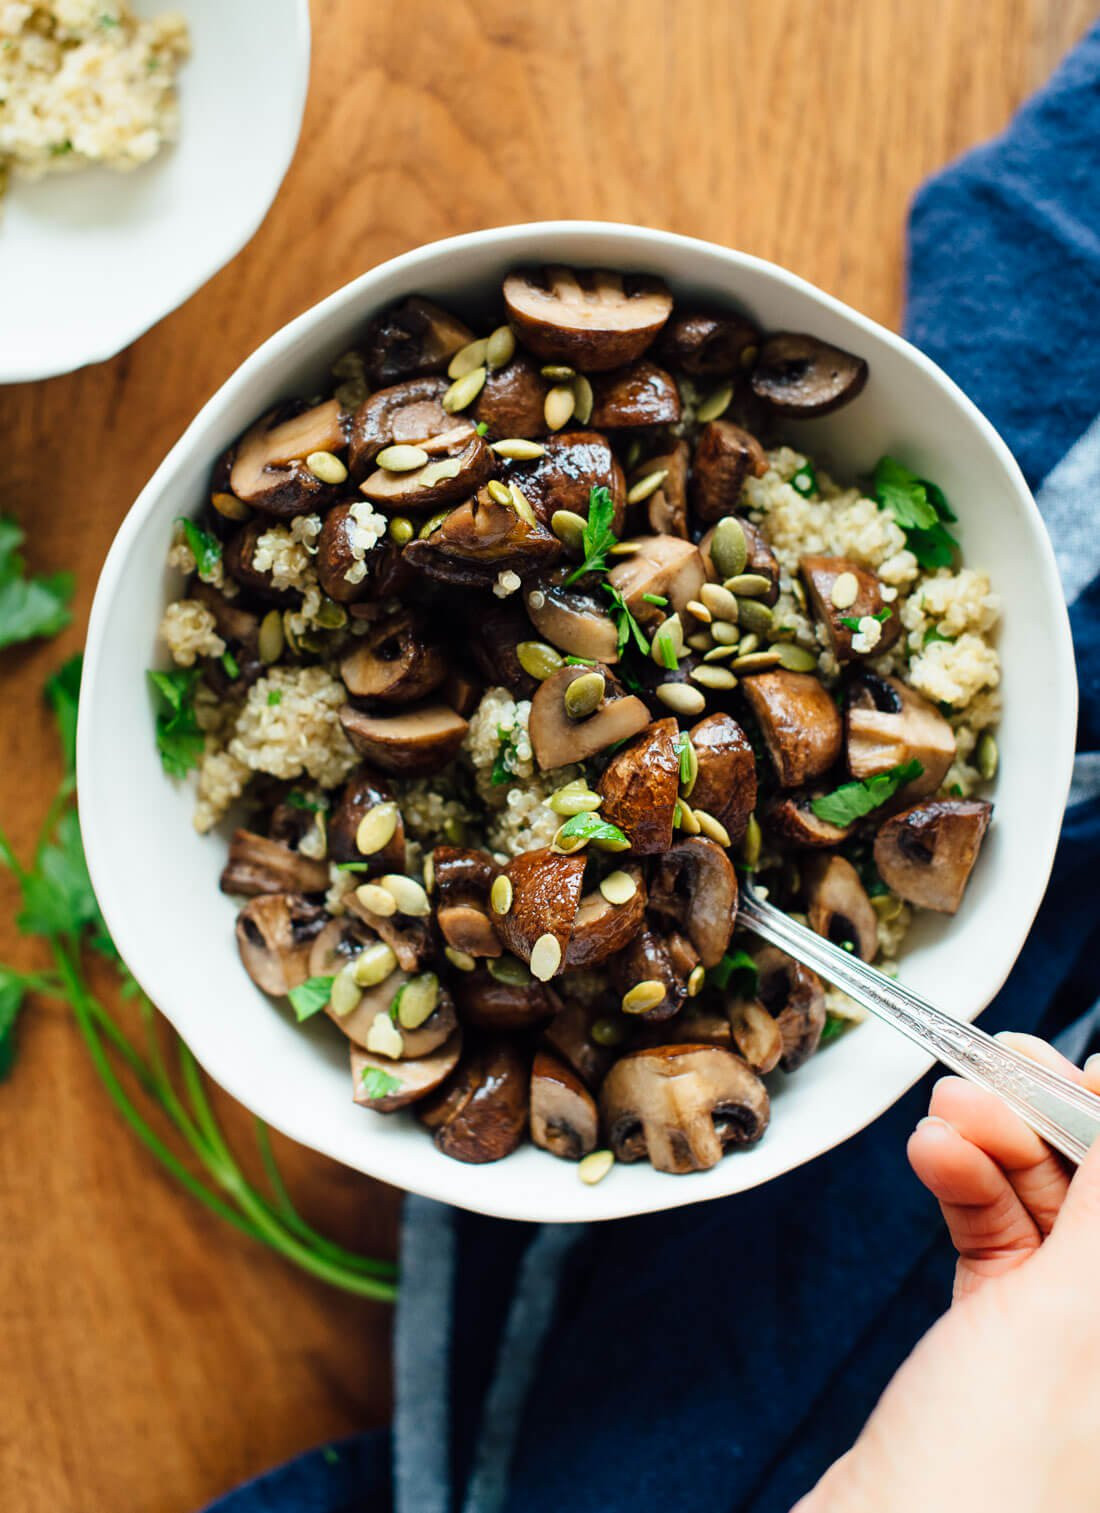 Healthy Dinner Side Dishes Recipes  Roasted Mushrooms with Herbed Quinoa Cookie and Kate